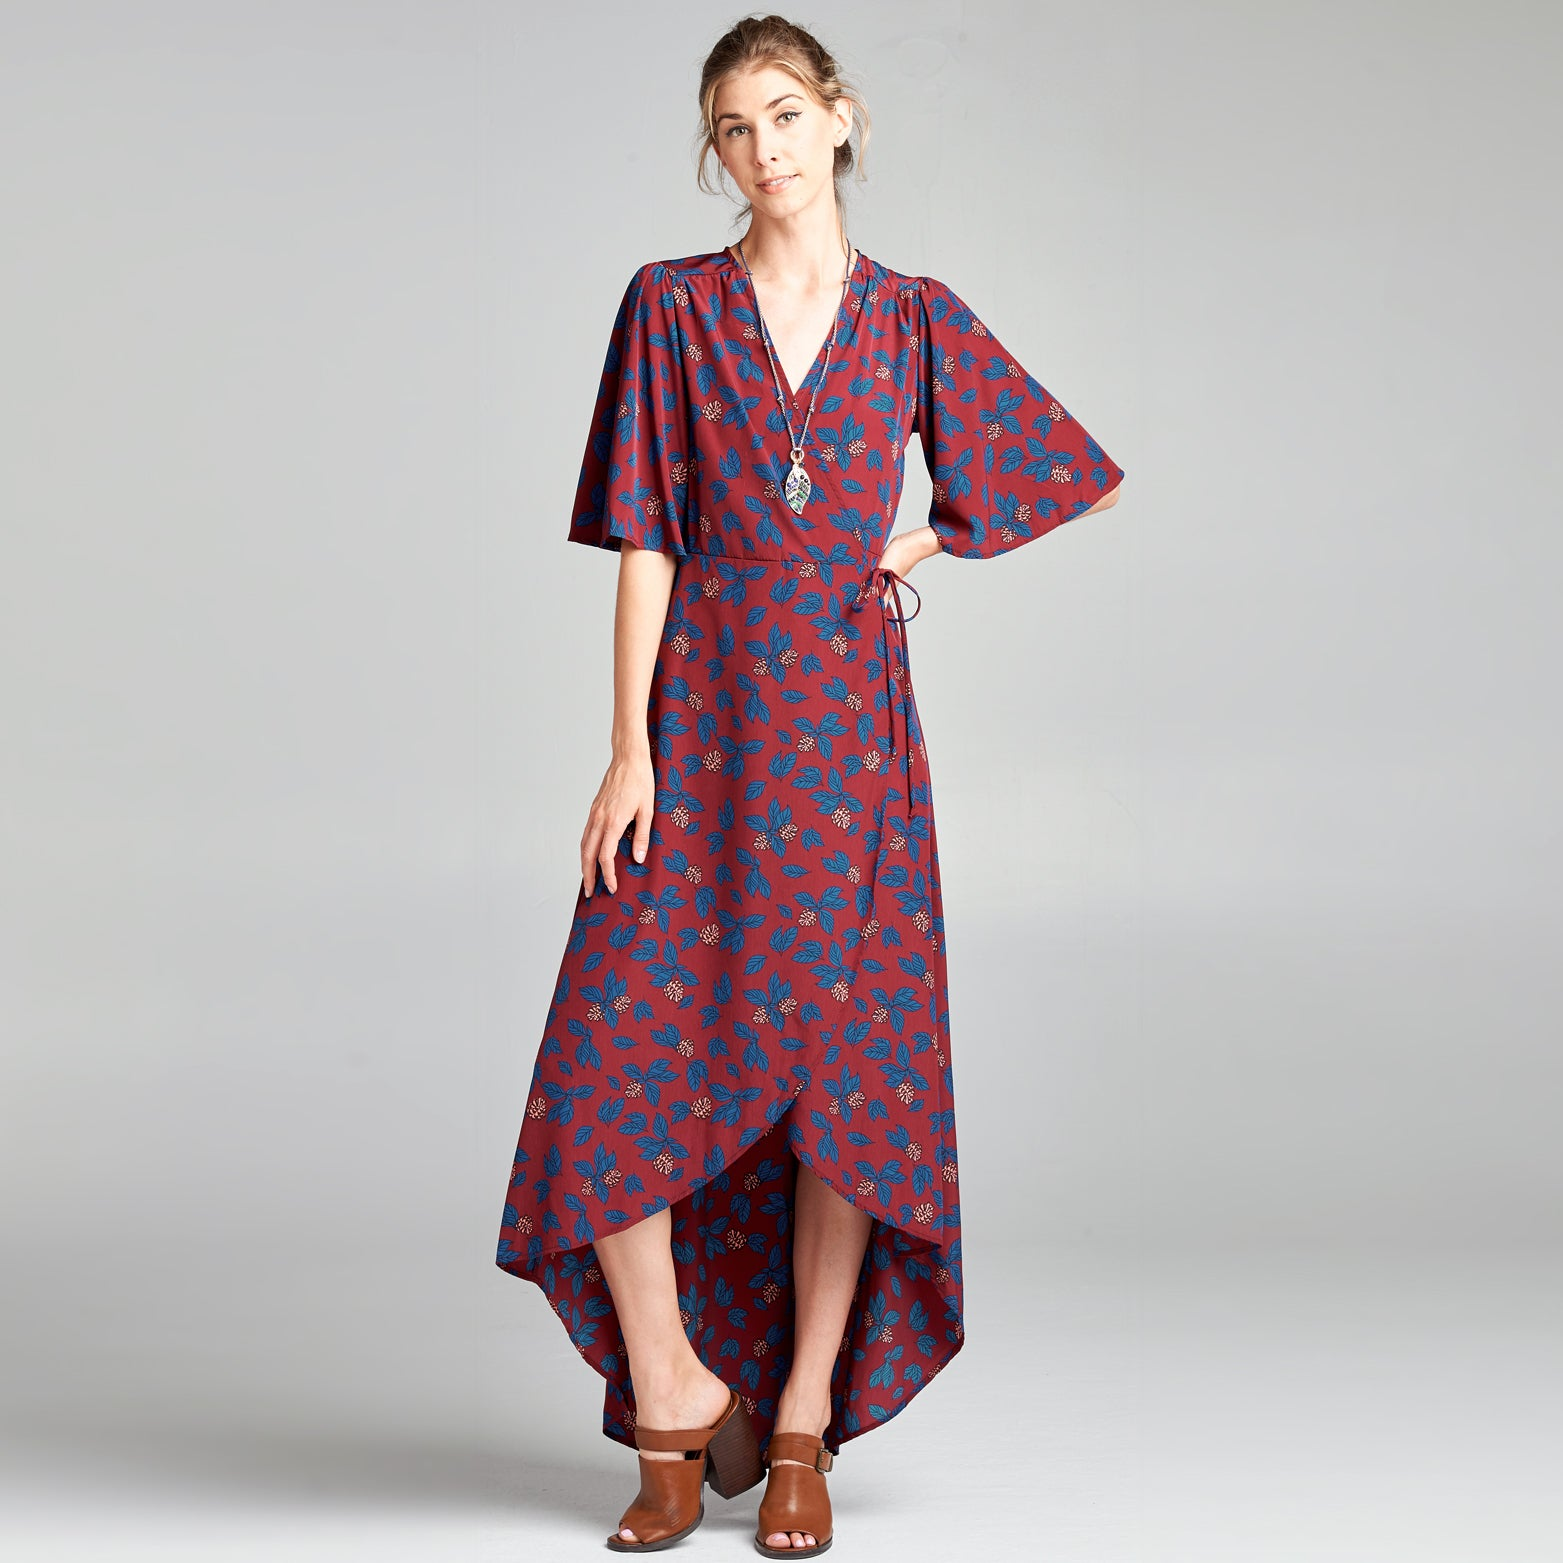 Navy Leaf Kimono Dress - Love, Kuza